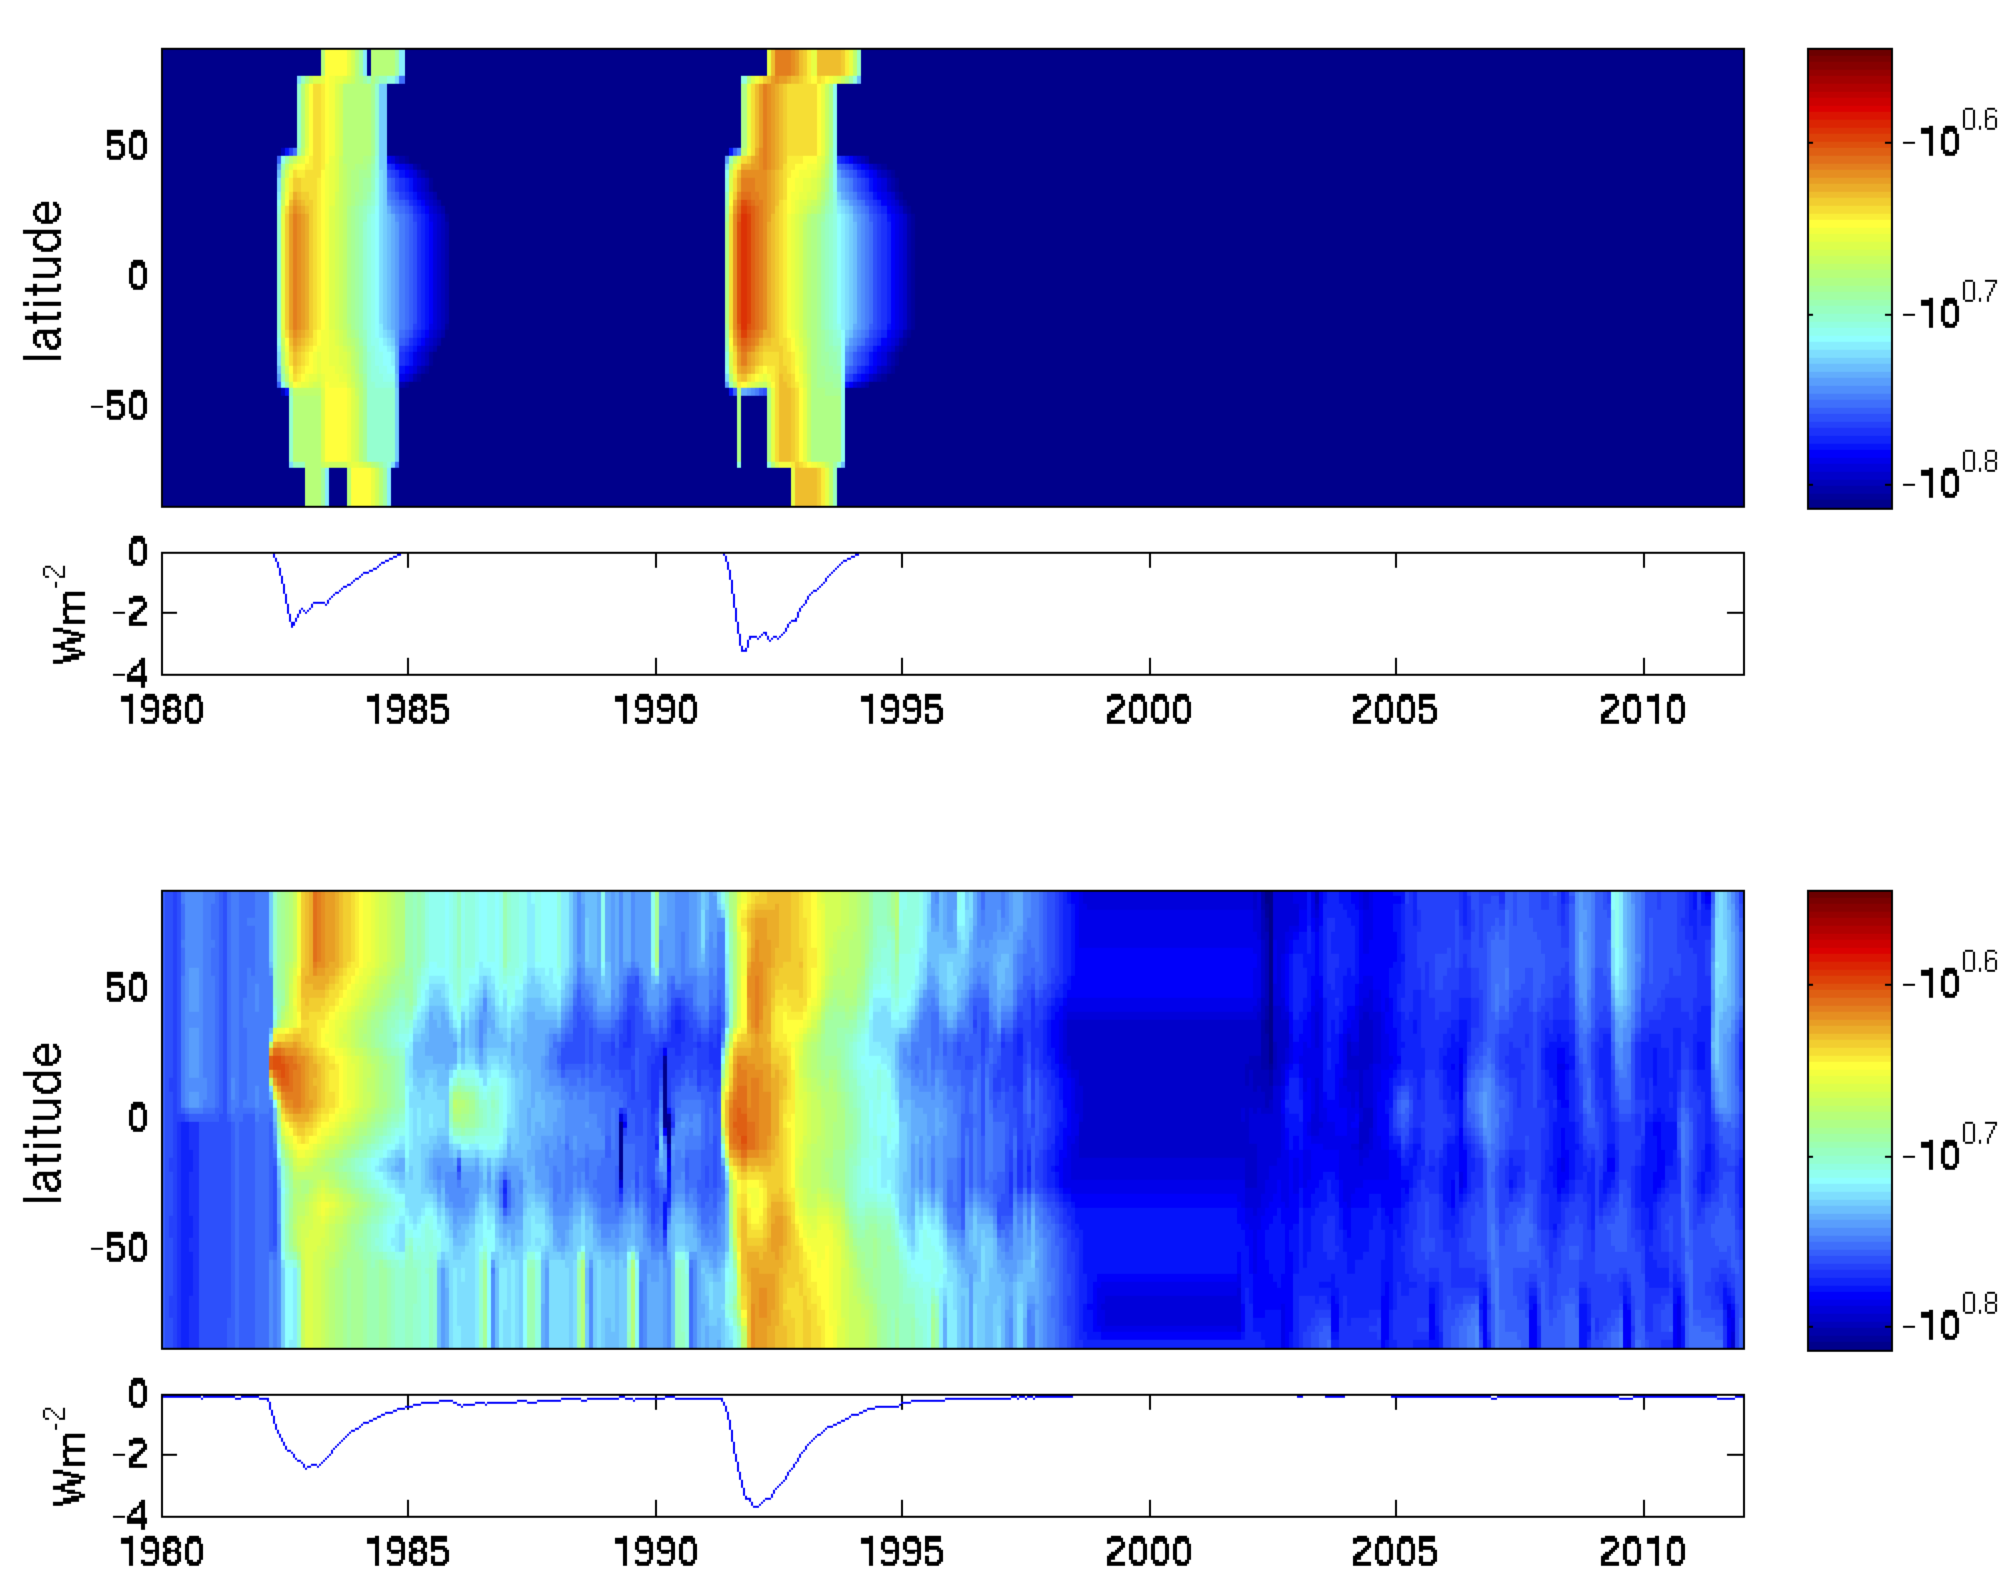 Column mass of volcanic aerosols in kg/m**2 by latitude with the meridionally integrated forcings underneath, for the (top) Reference forcings from the NorESM CMIP5 runs and the (bottom) Sensitivity forcings. These are both based on the work of Sato et al.